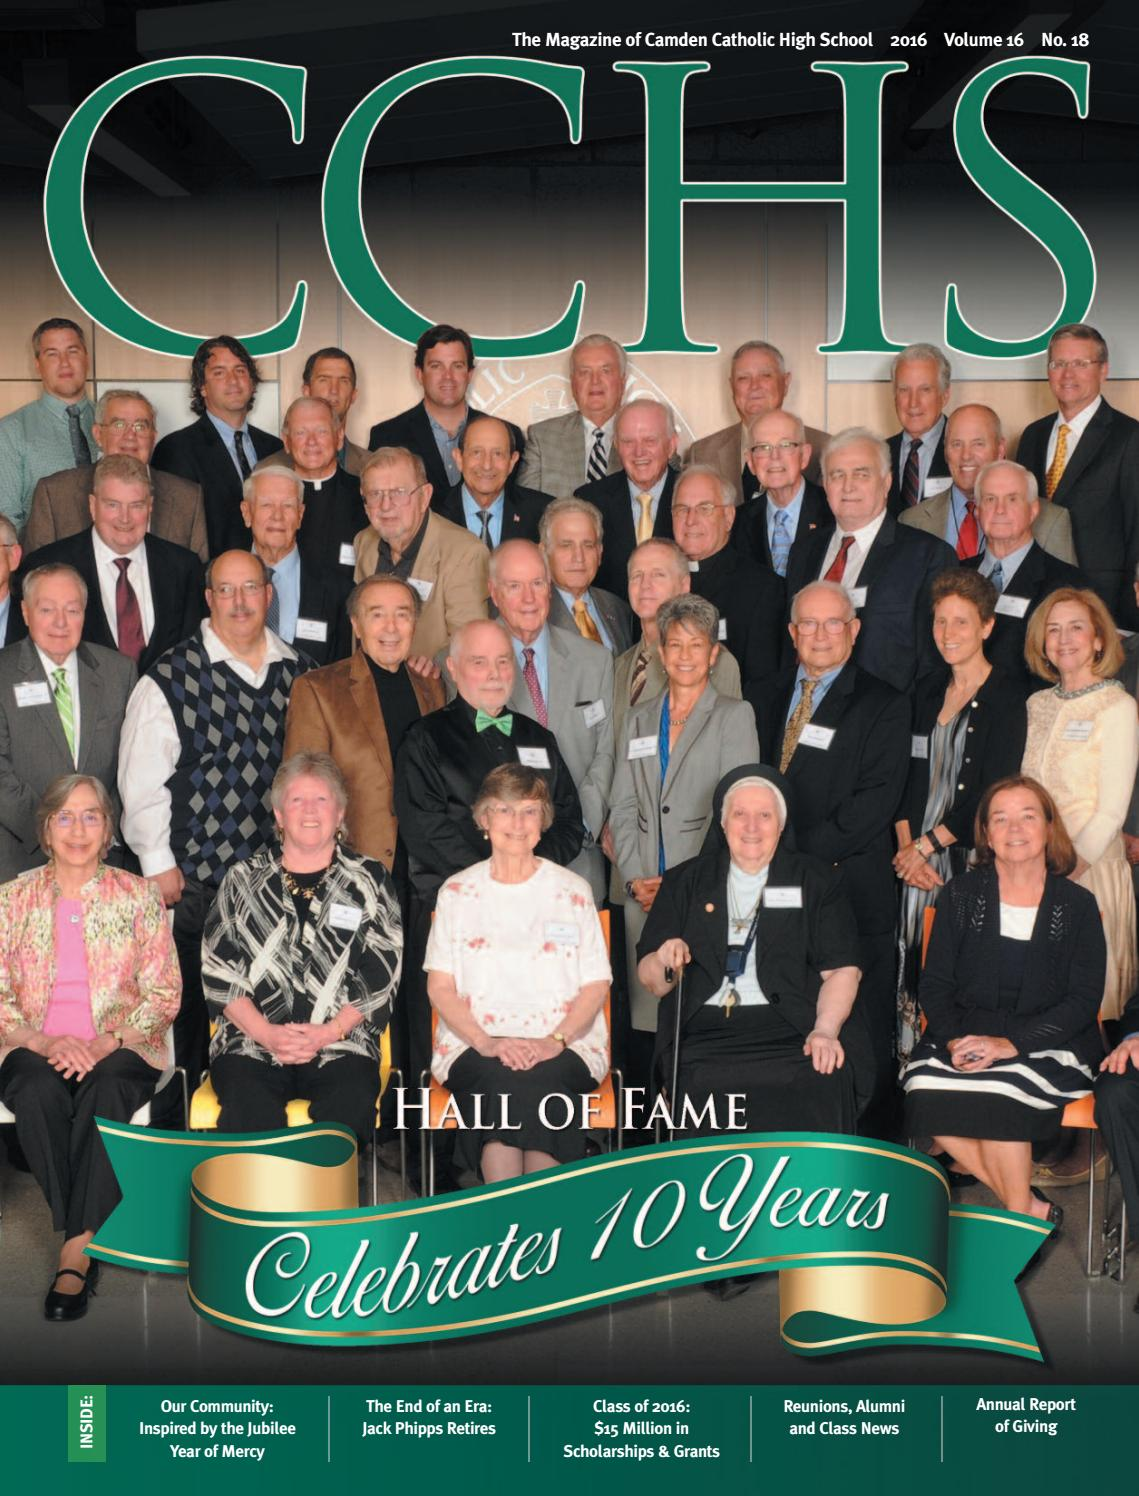 CCHS Magazine 2016 by Camden Catholic High School - Issuu